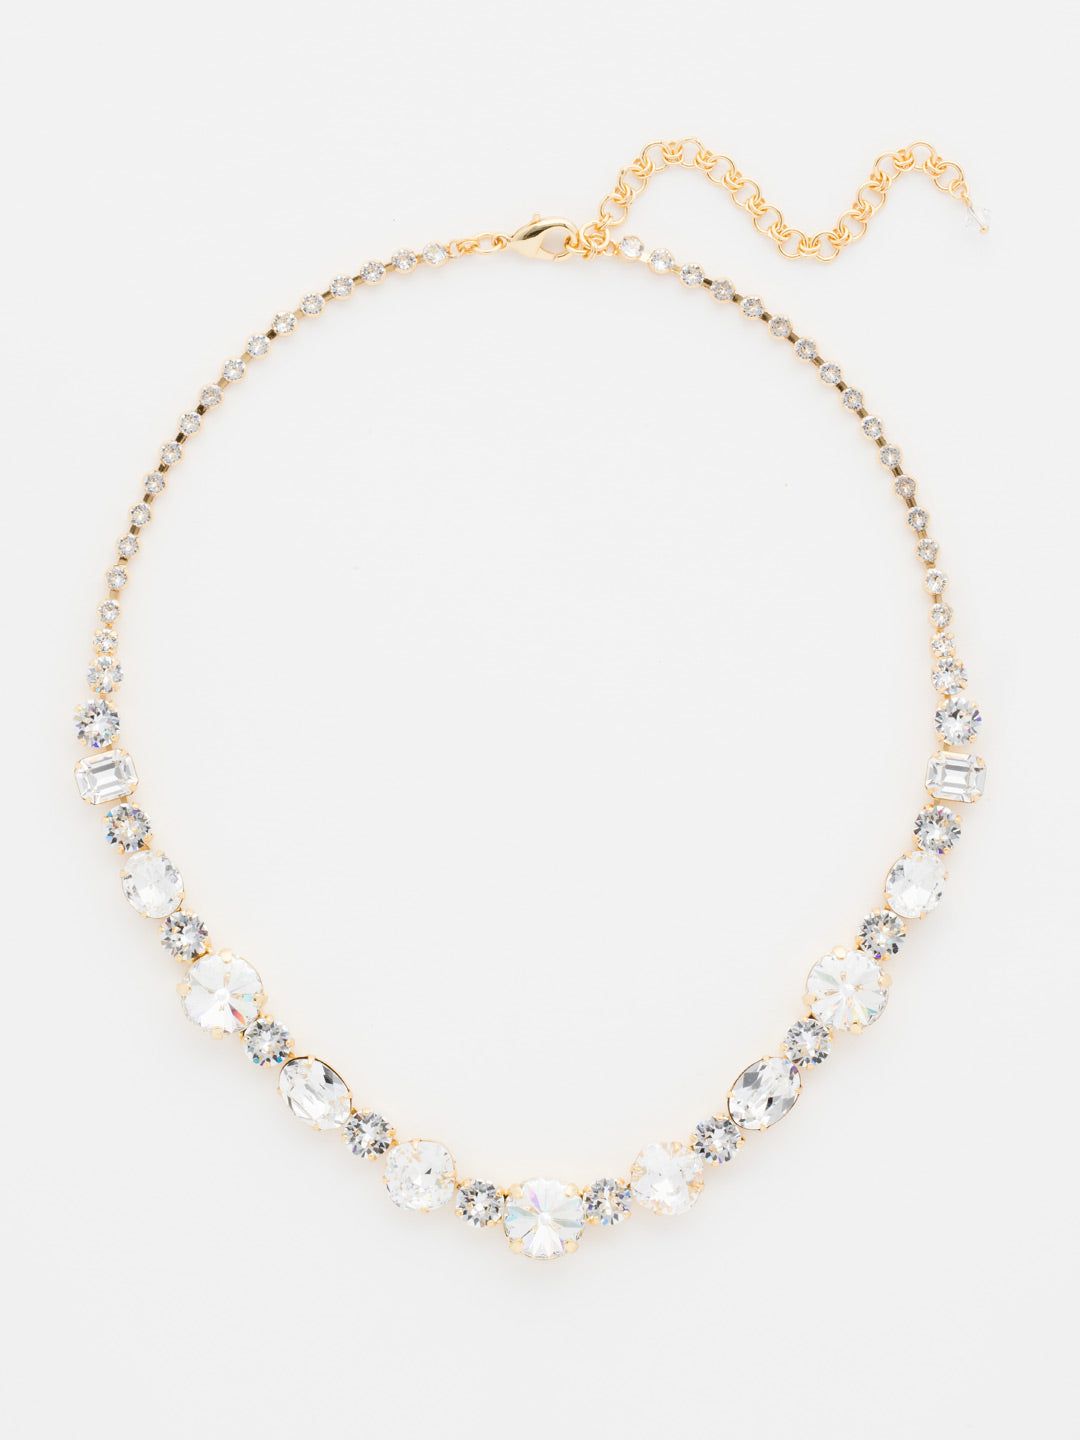 Graduated Classic Tennis Necklace - NCP38BGCRY